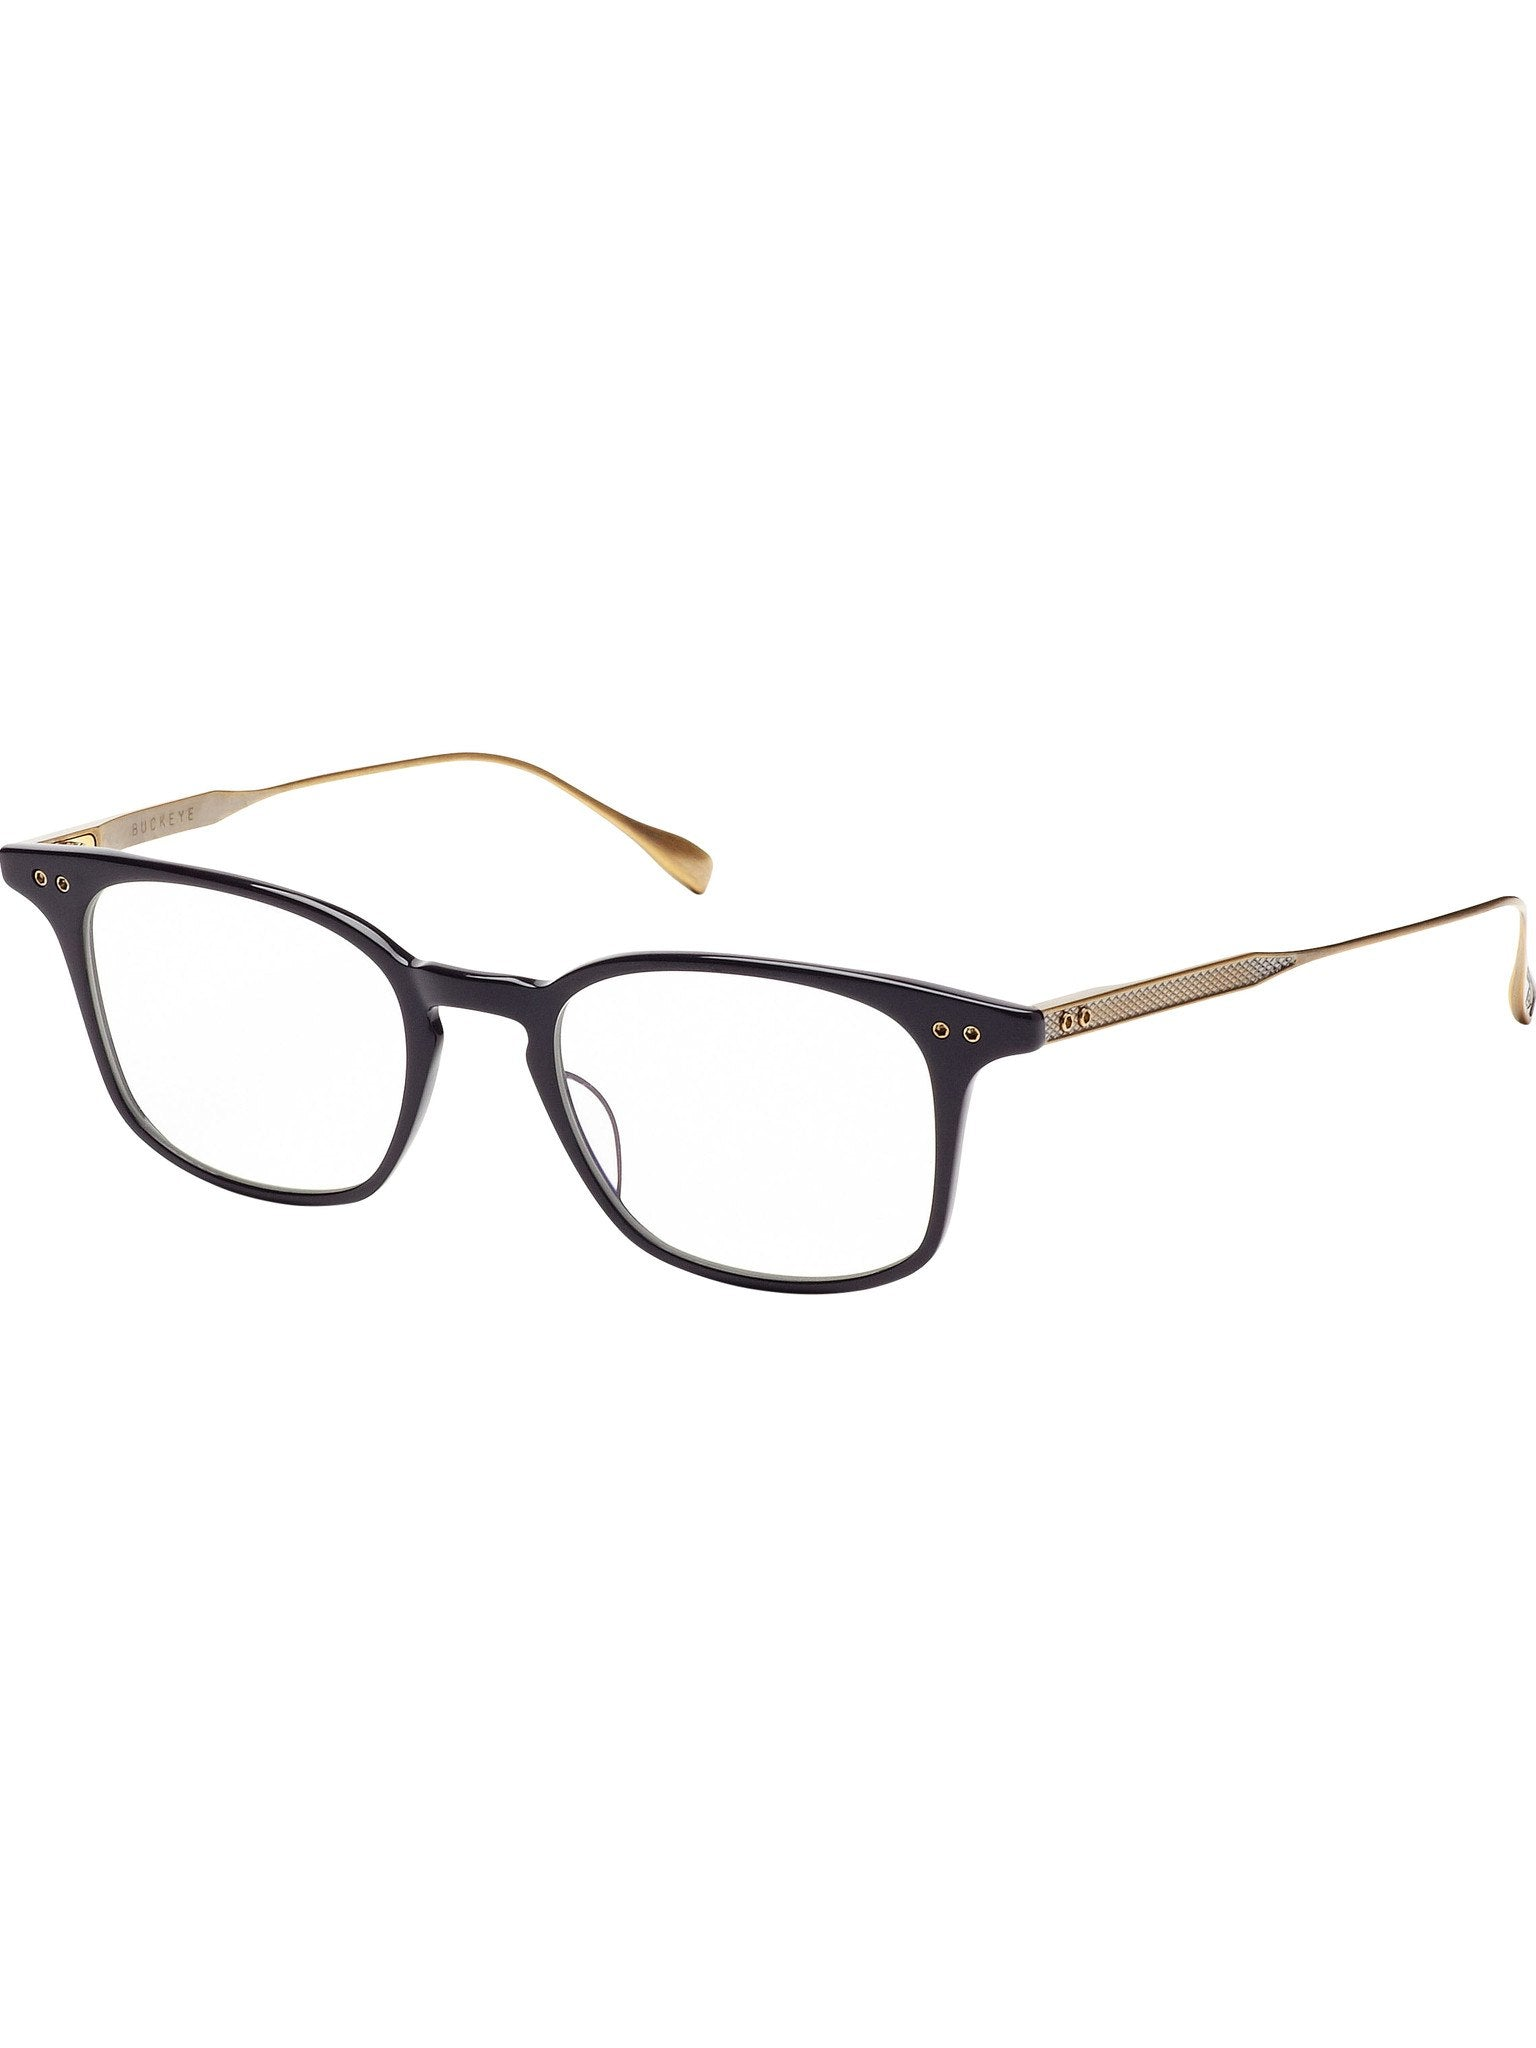 Optical Frame - Dita Buckeye DRX-2072-C Glasses